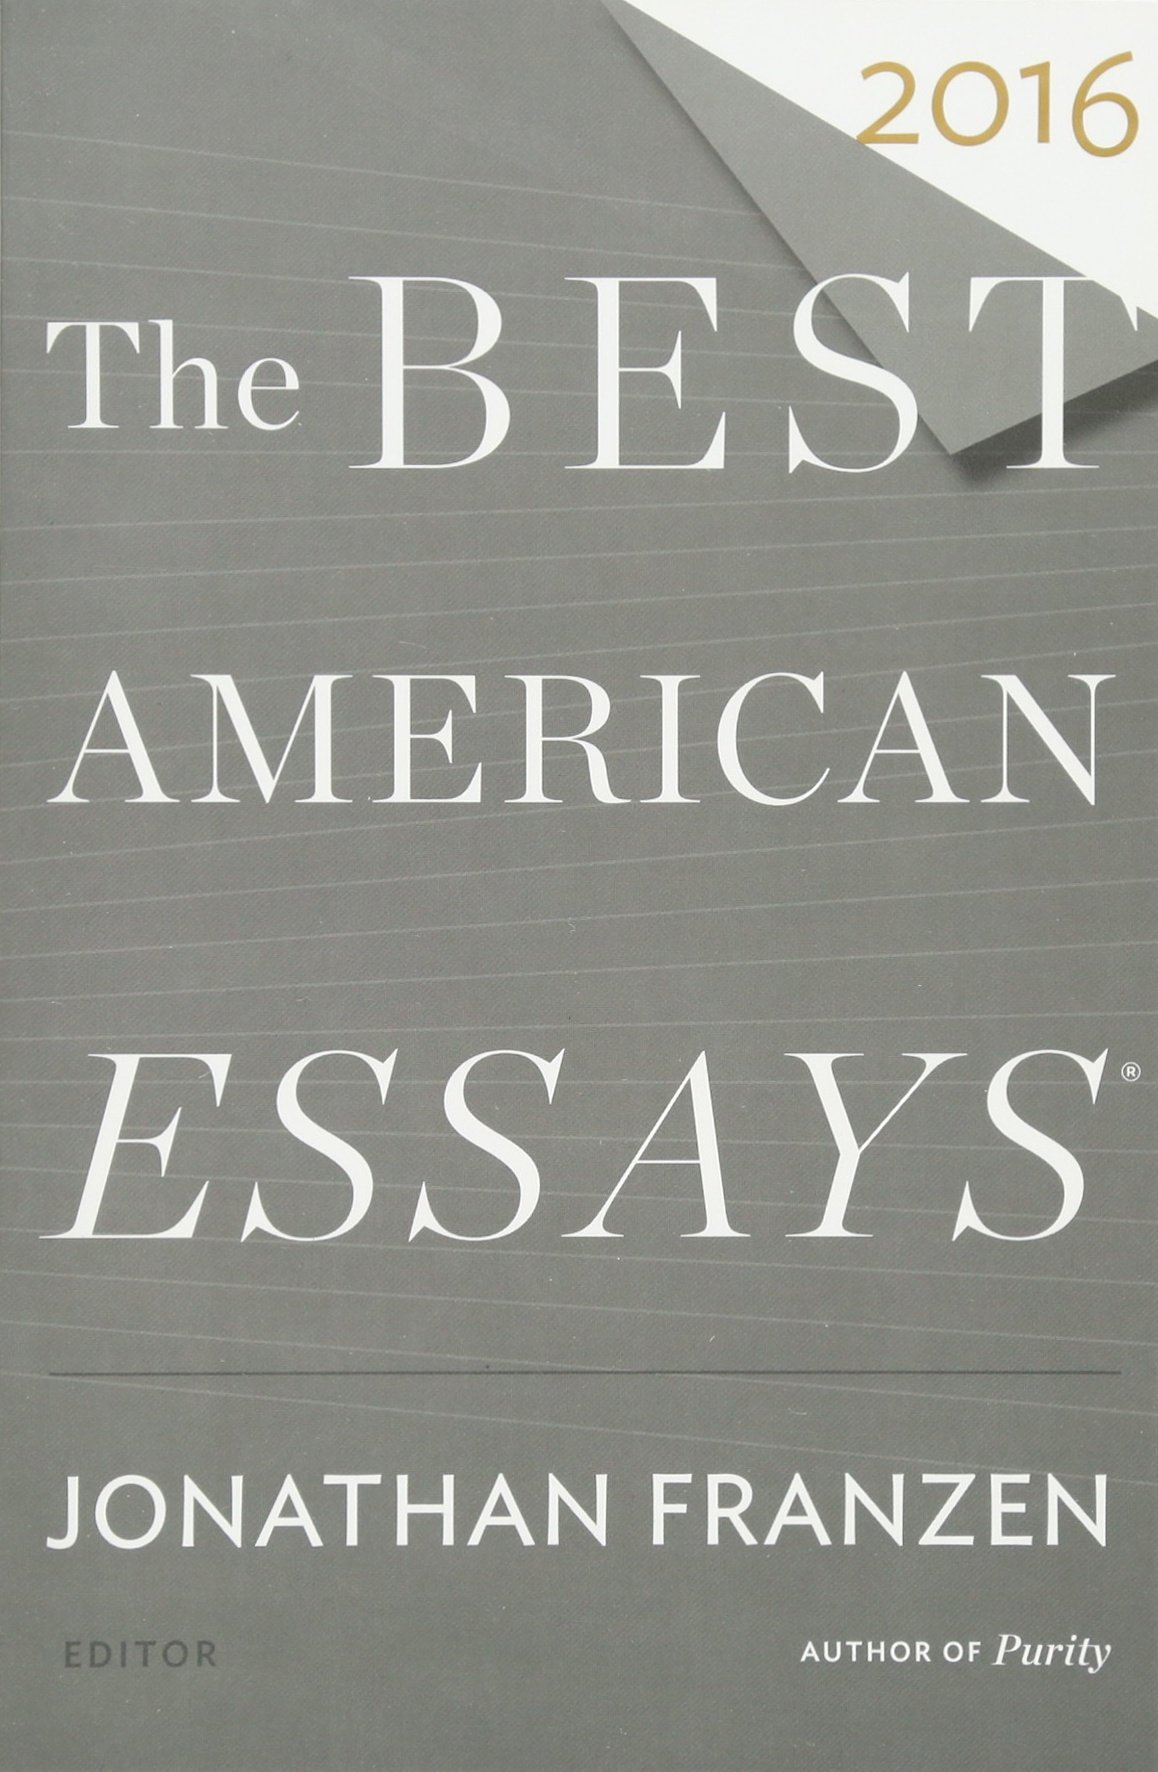 001 71a6bhsgsdl Essay Example Best American Essays Unique 2016 Notables The Free Pdf Full